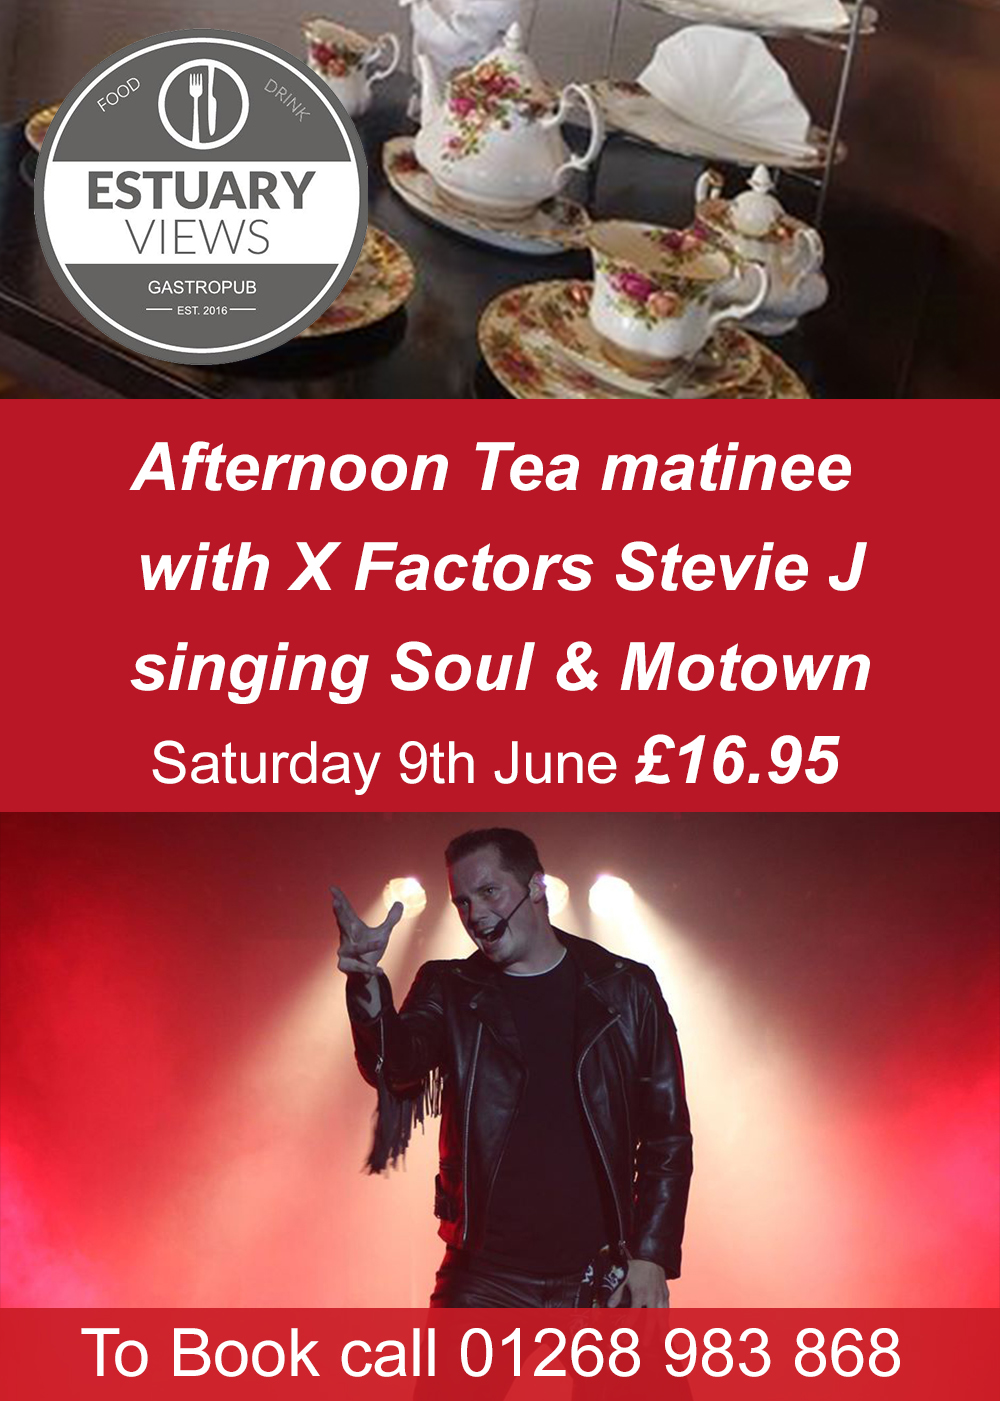 Soul/Motown Afternoon Tea Matinee with X Factors Stevie J